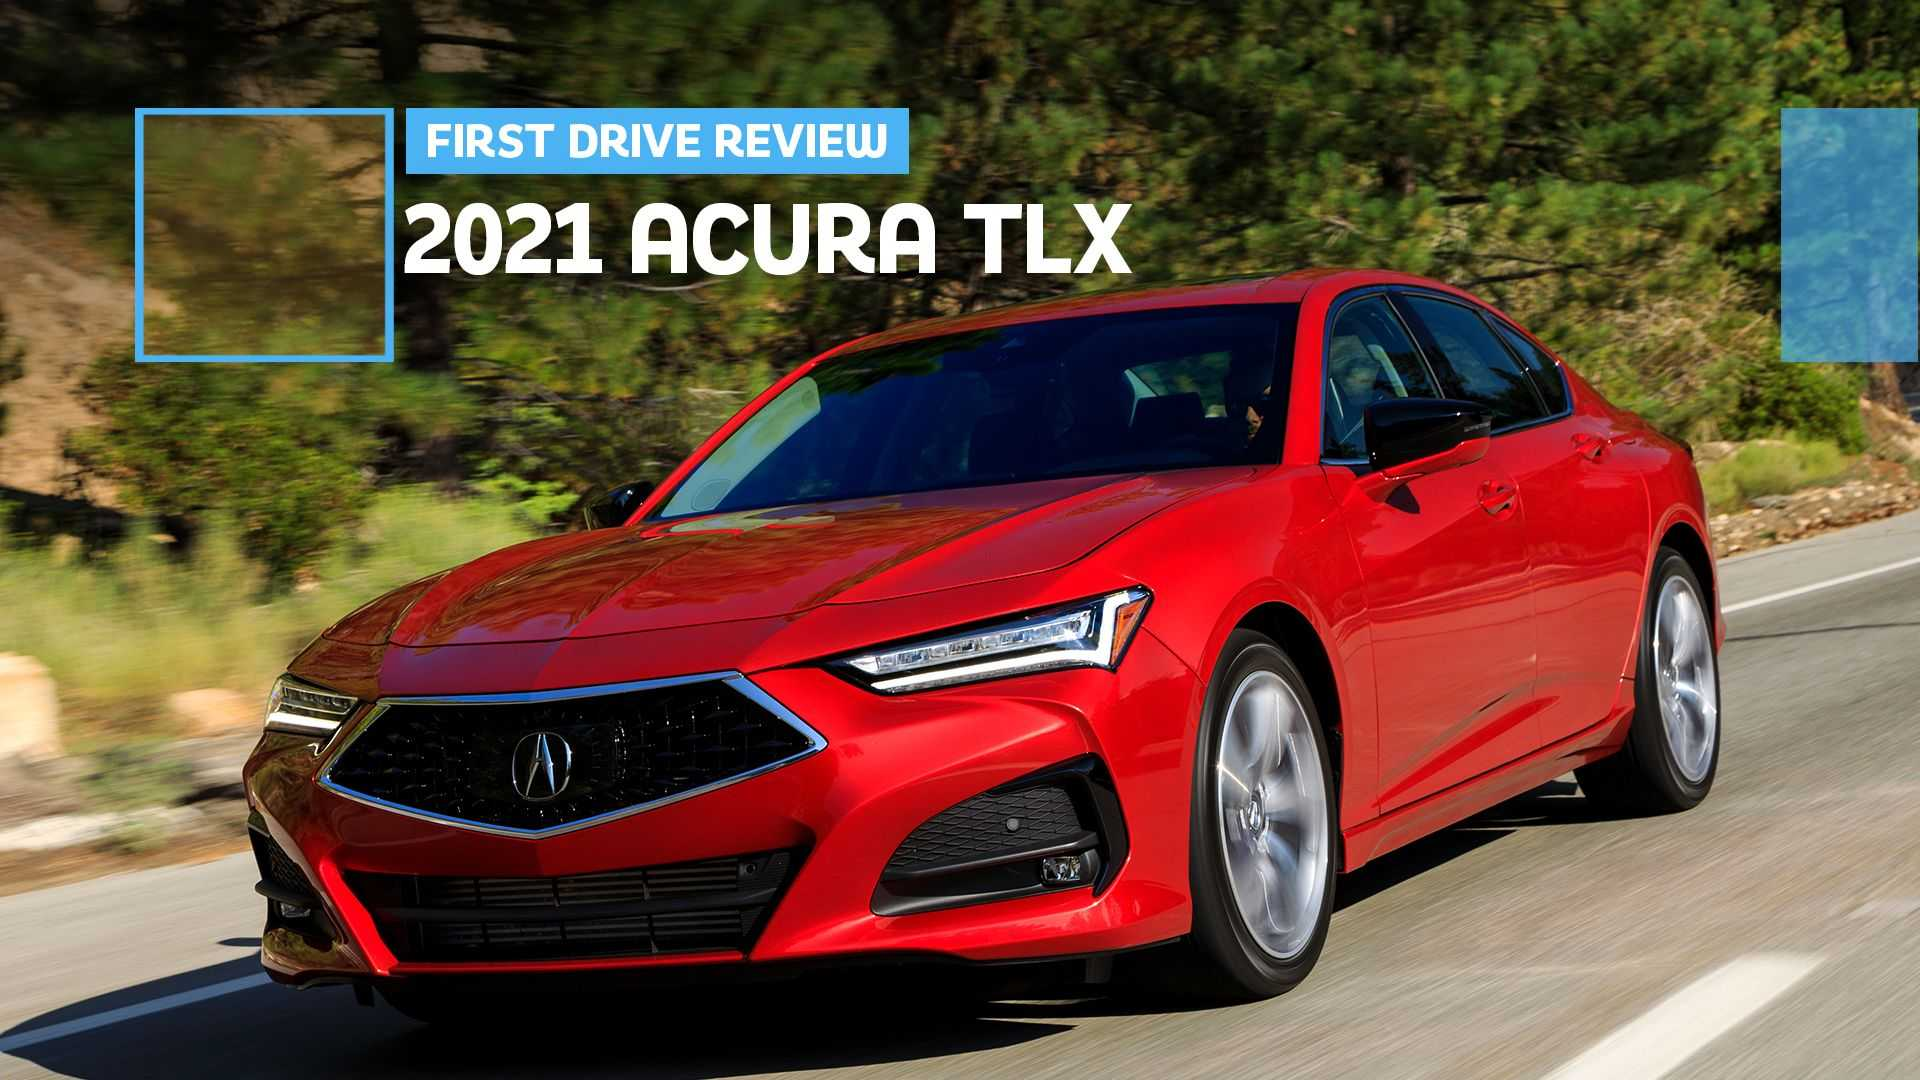 2021 Acura TLX First Drive Review: Making Strides Toward Excellence thumbnail